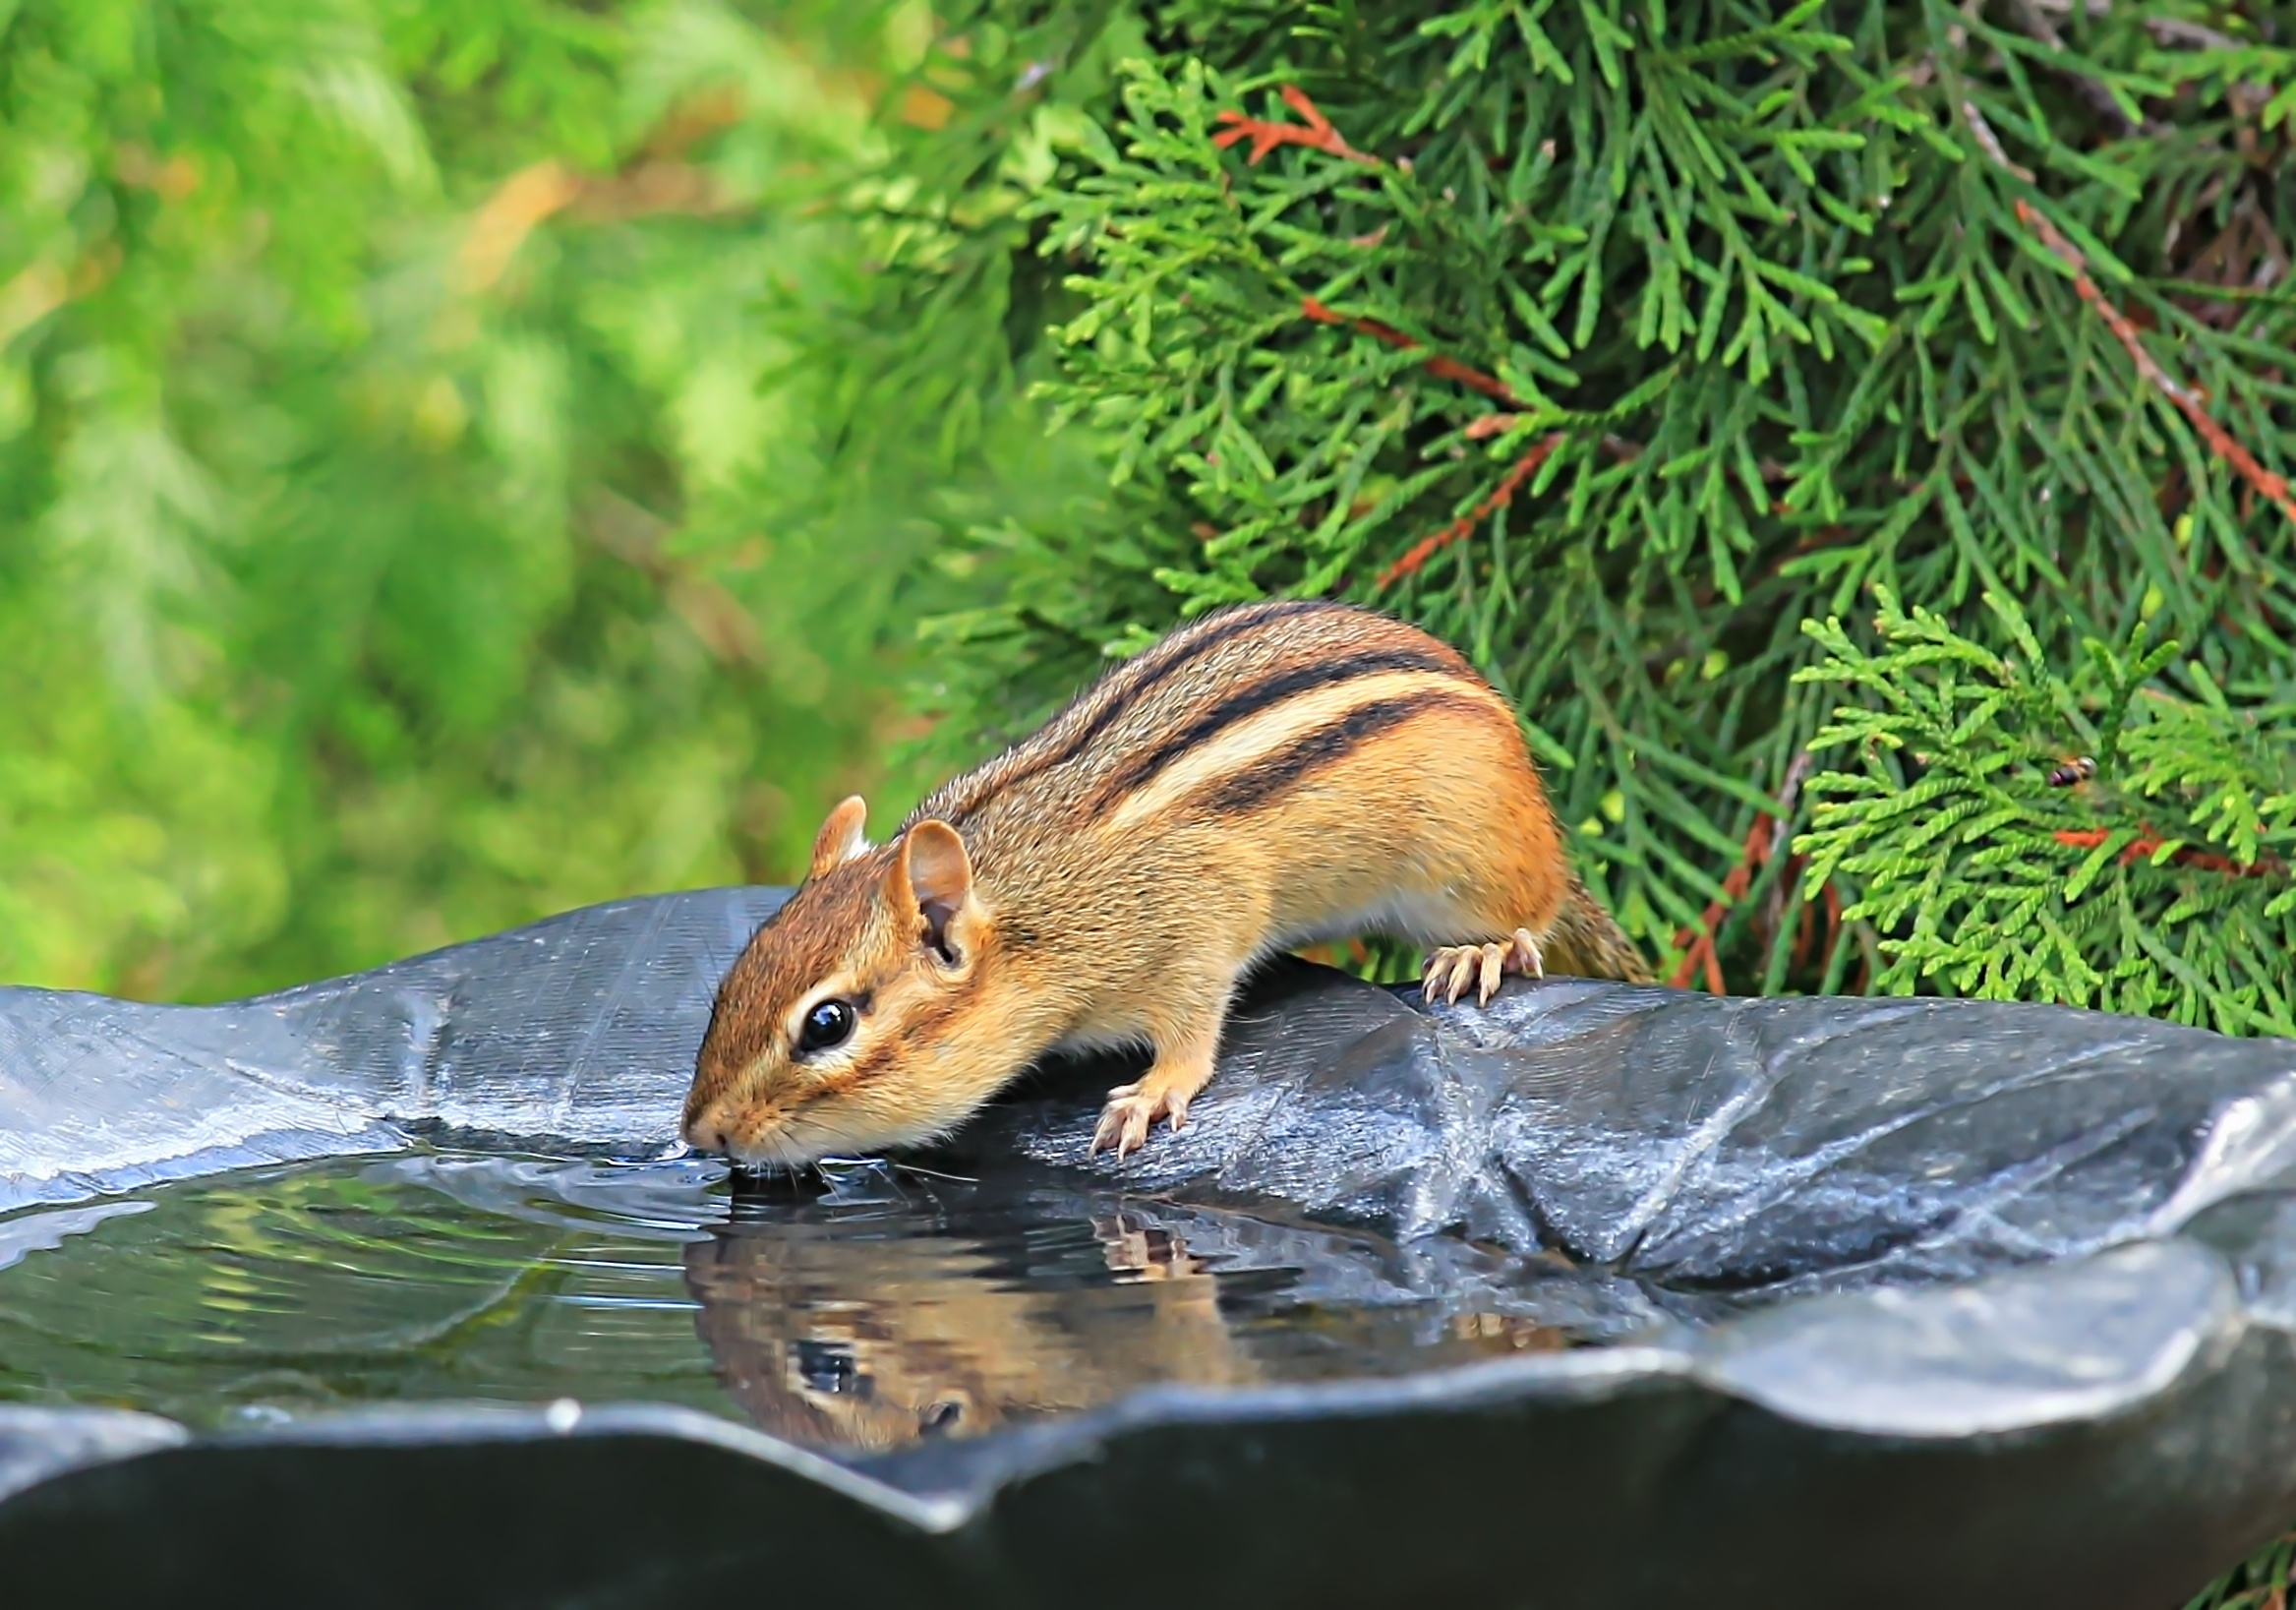 Chippy sneaking a drink